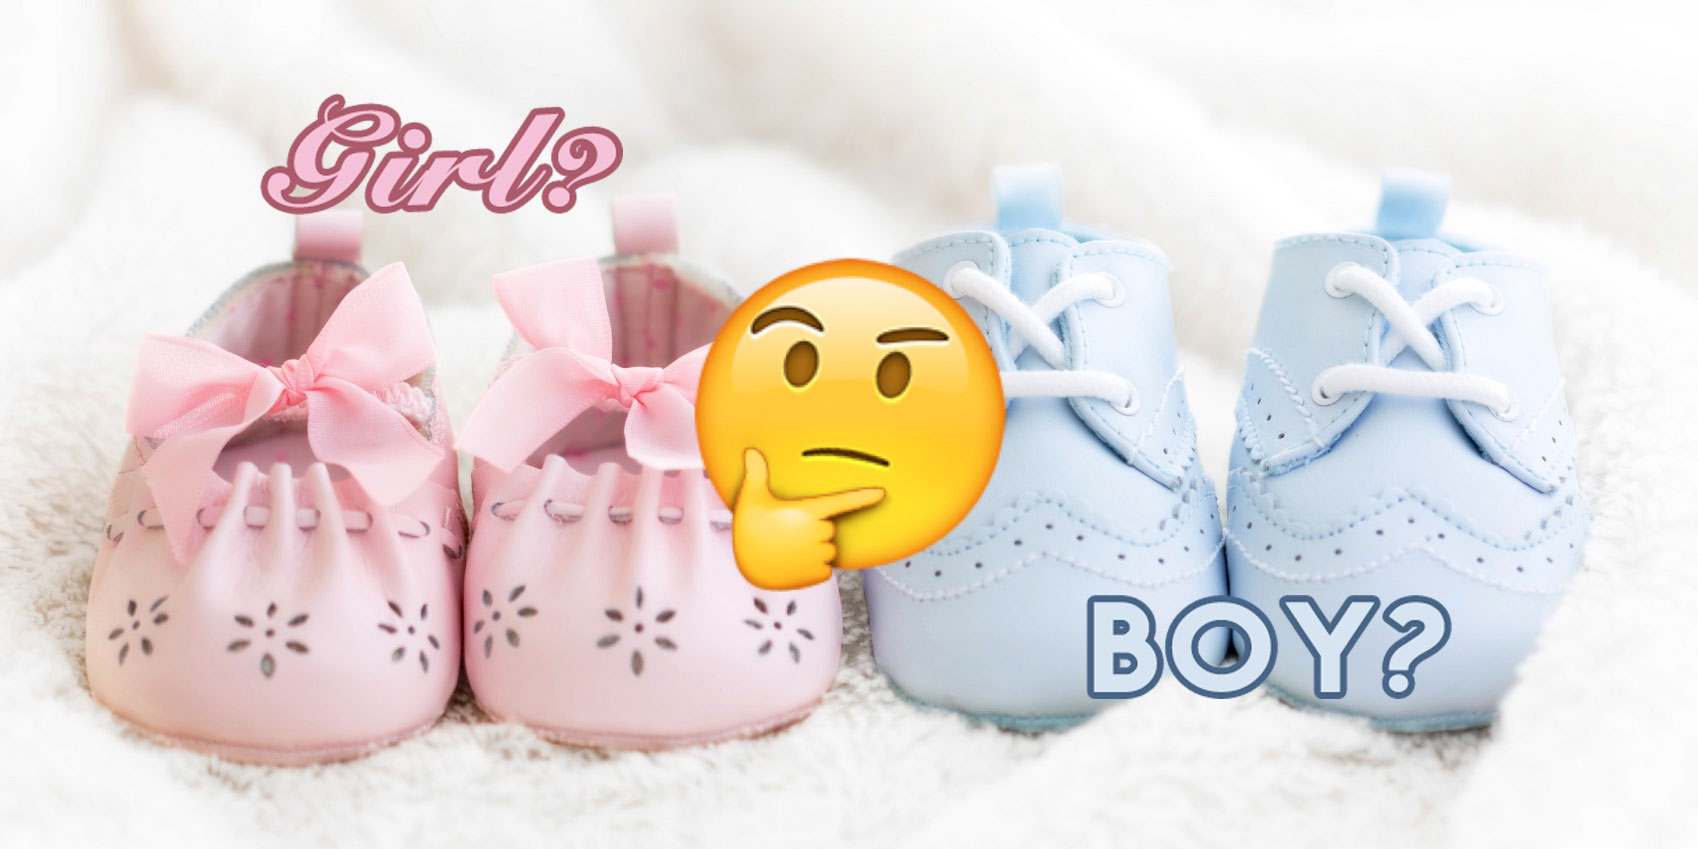 Are You Having A Boy Or A Girl? Take The Quiz! | TheQuiz